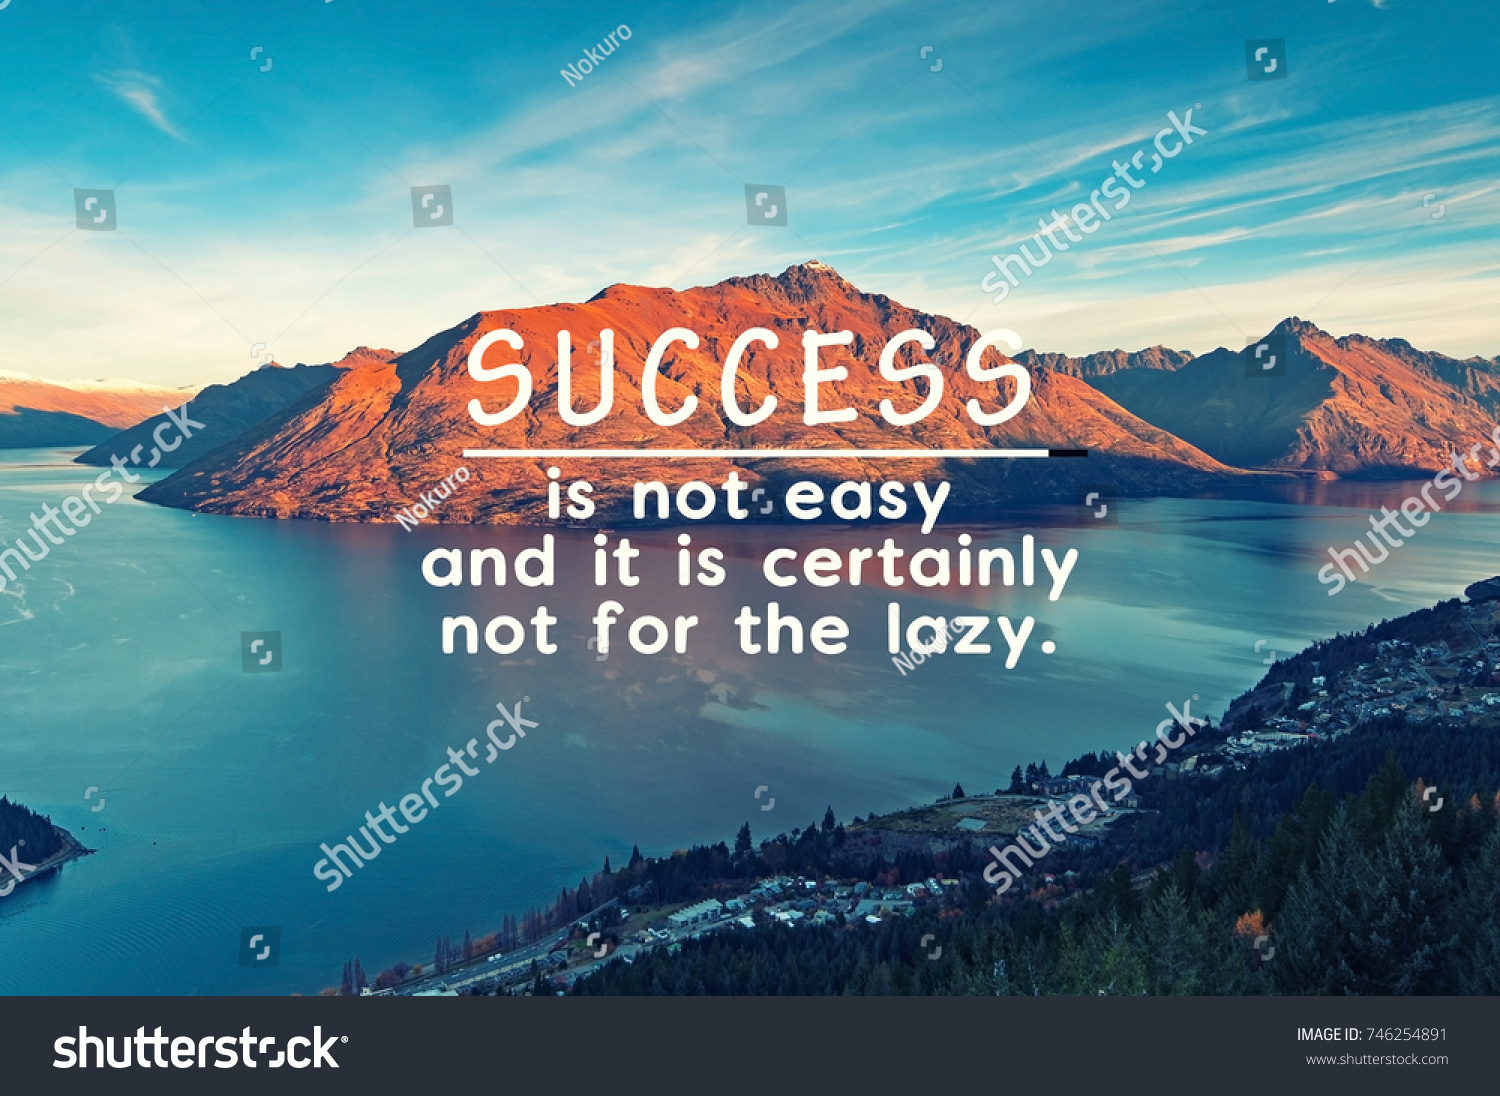 Life Is Not Easy Quotes Life Inspirational Quotes Success Not Easy Stock Photo 746254891